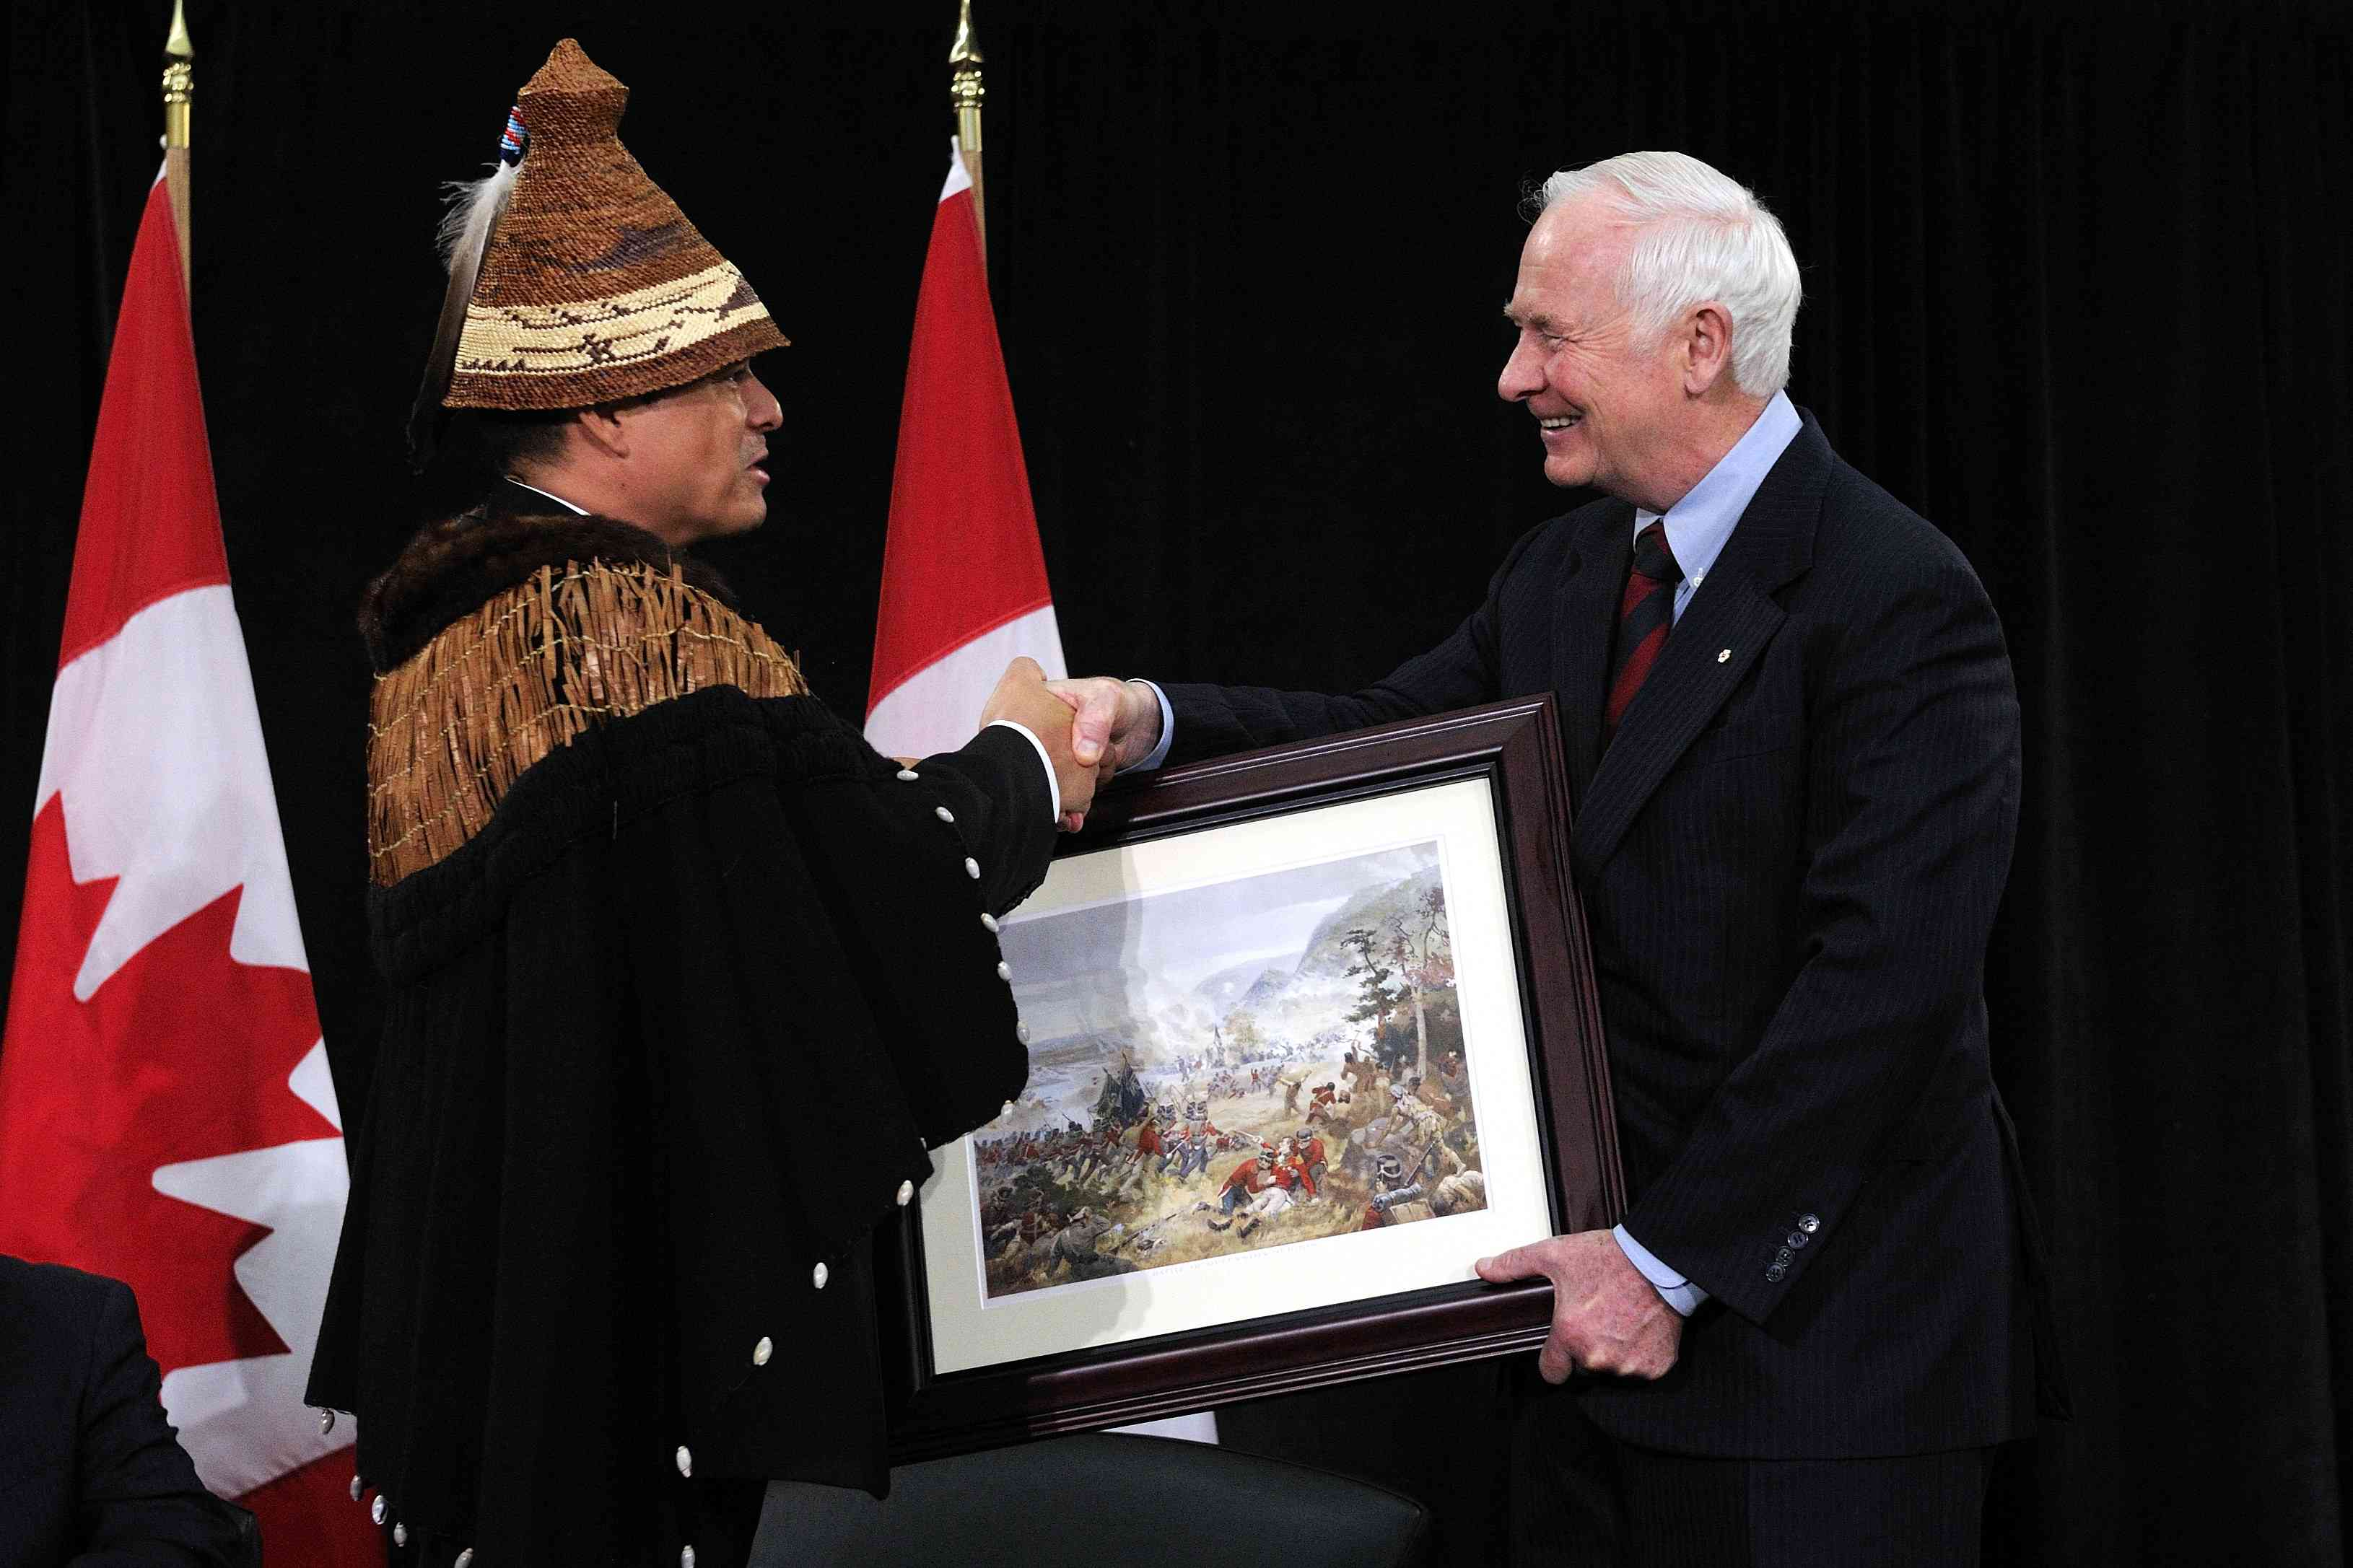 On behalf of the Crown, the Governor General offered a framed painting of the Battle of Queenston Heights to Chief Atleo.